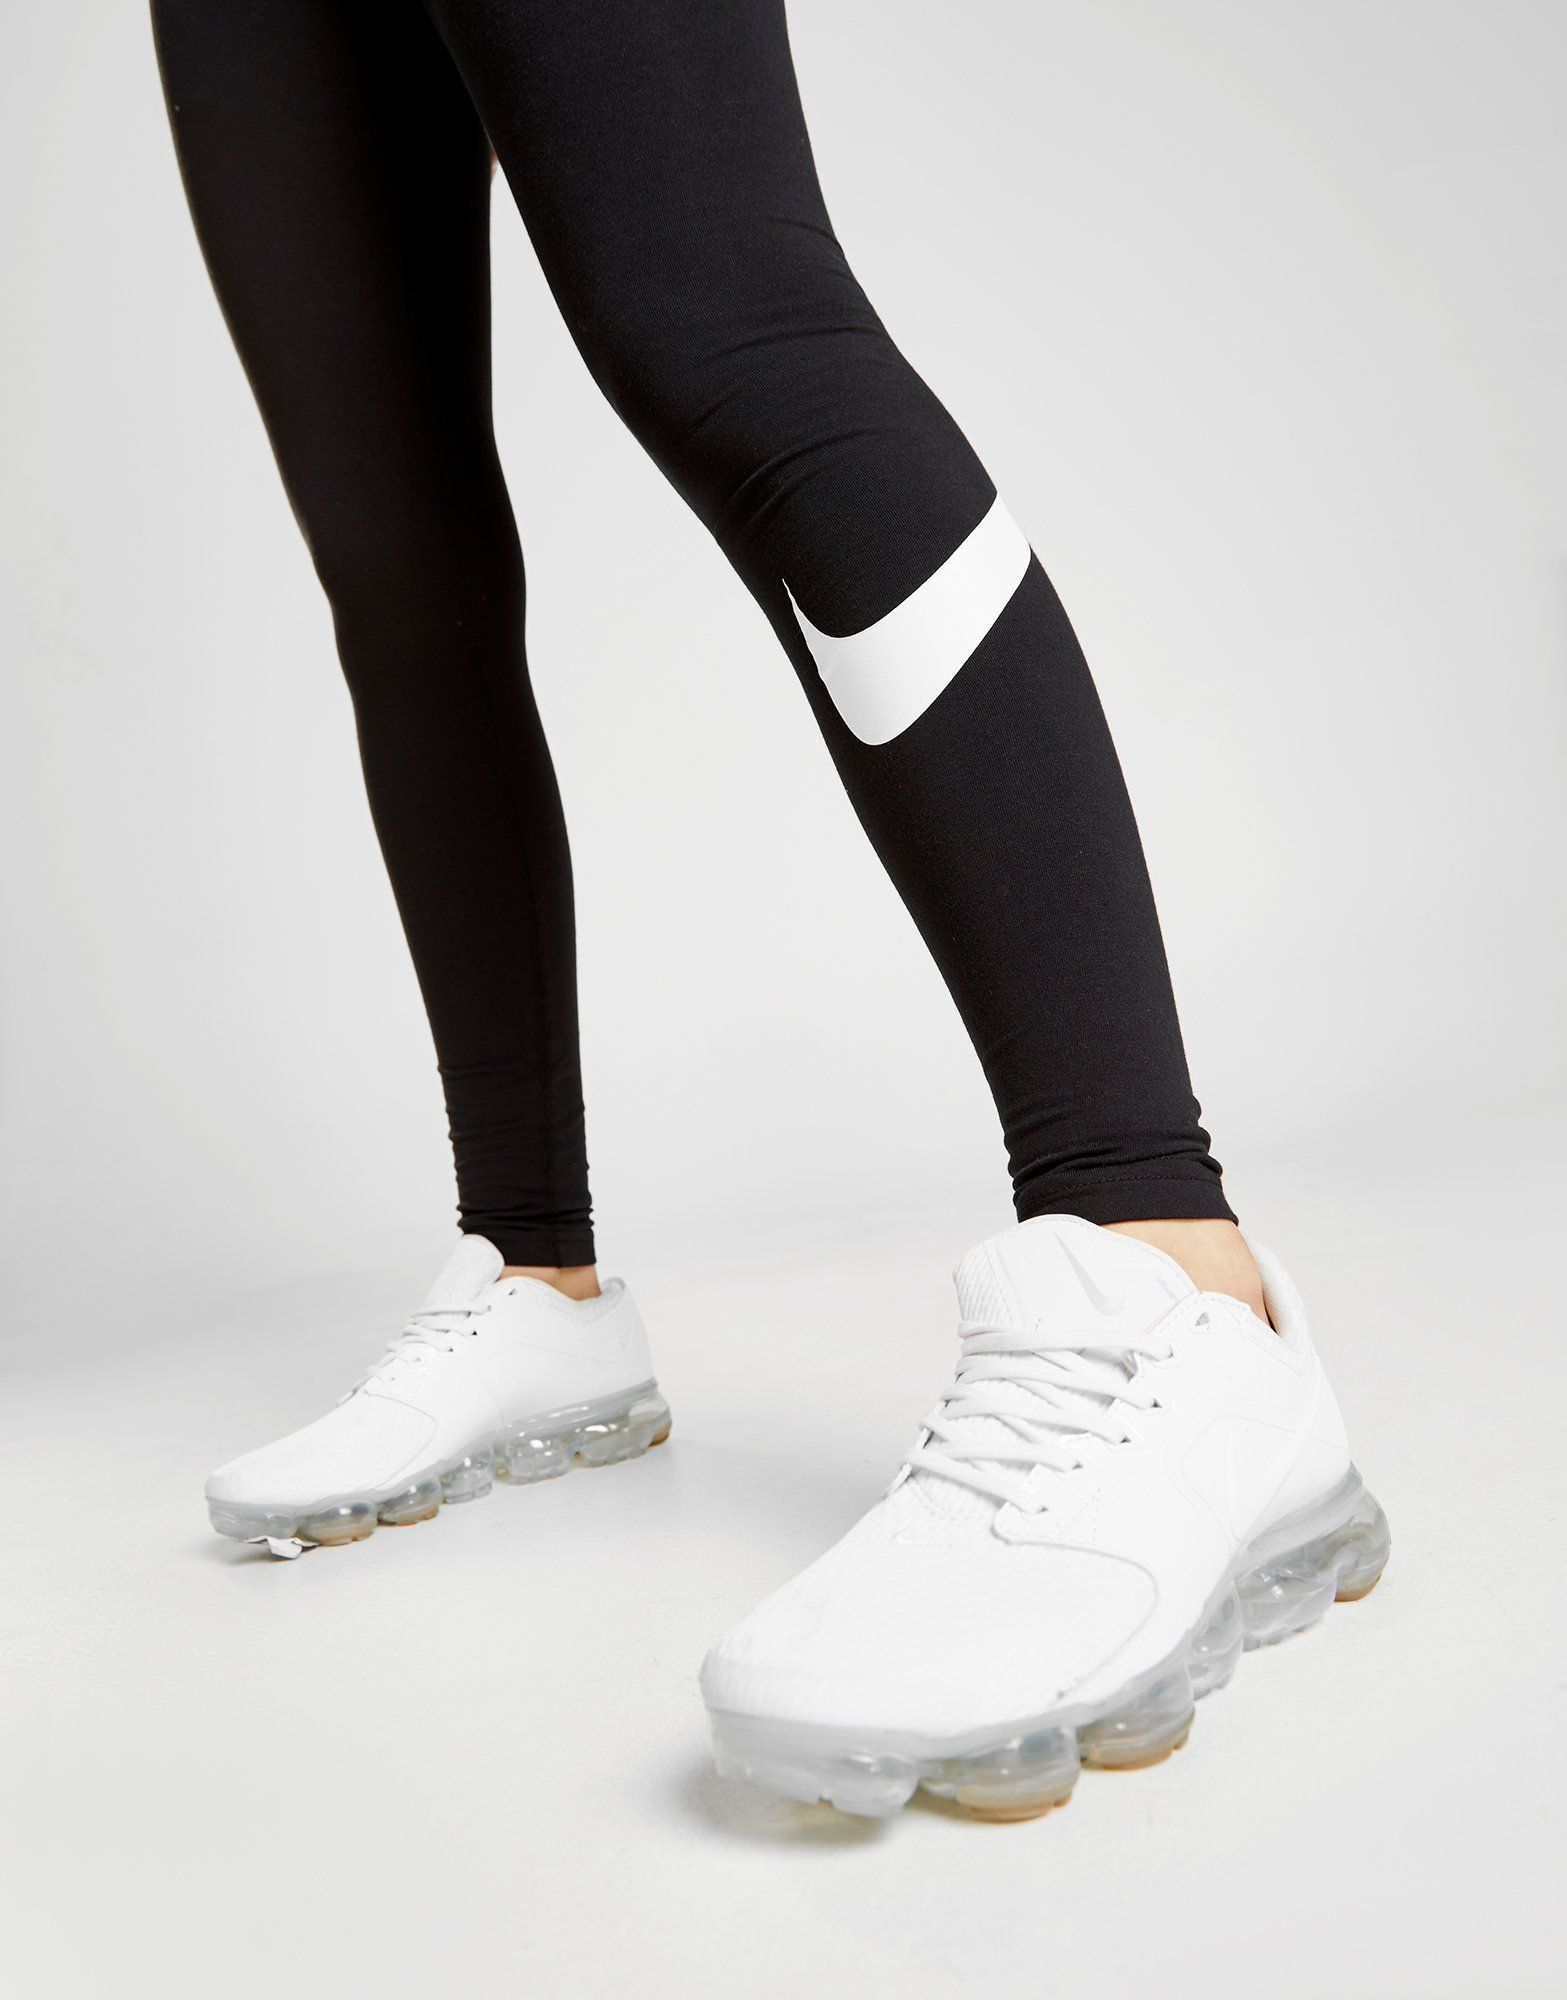 Nike leggings High Waisted Swoosh